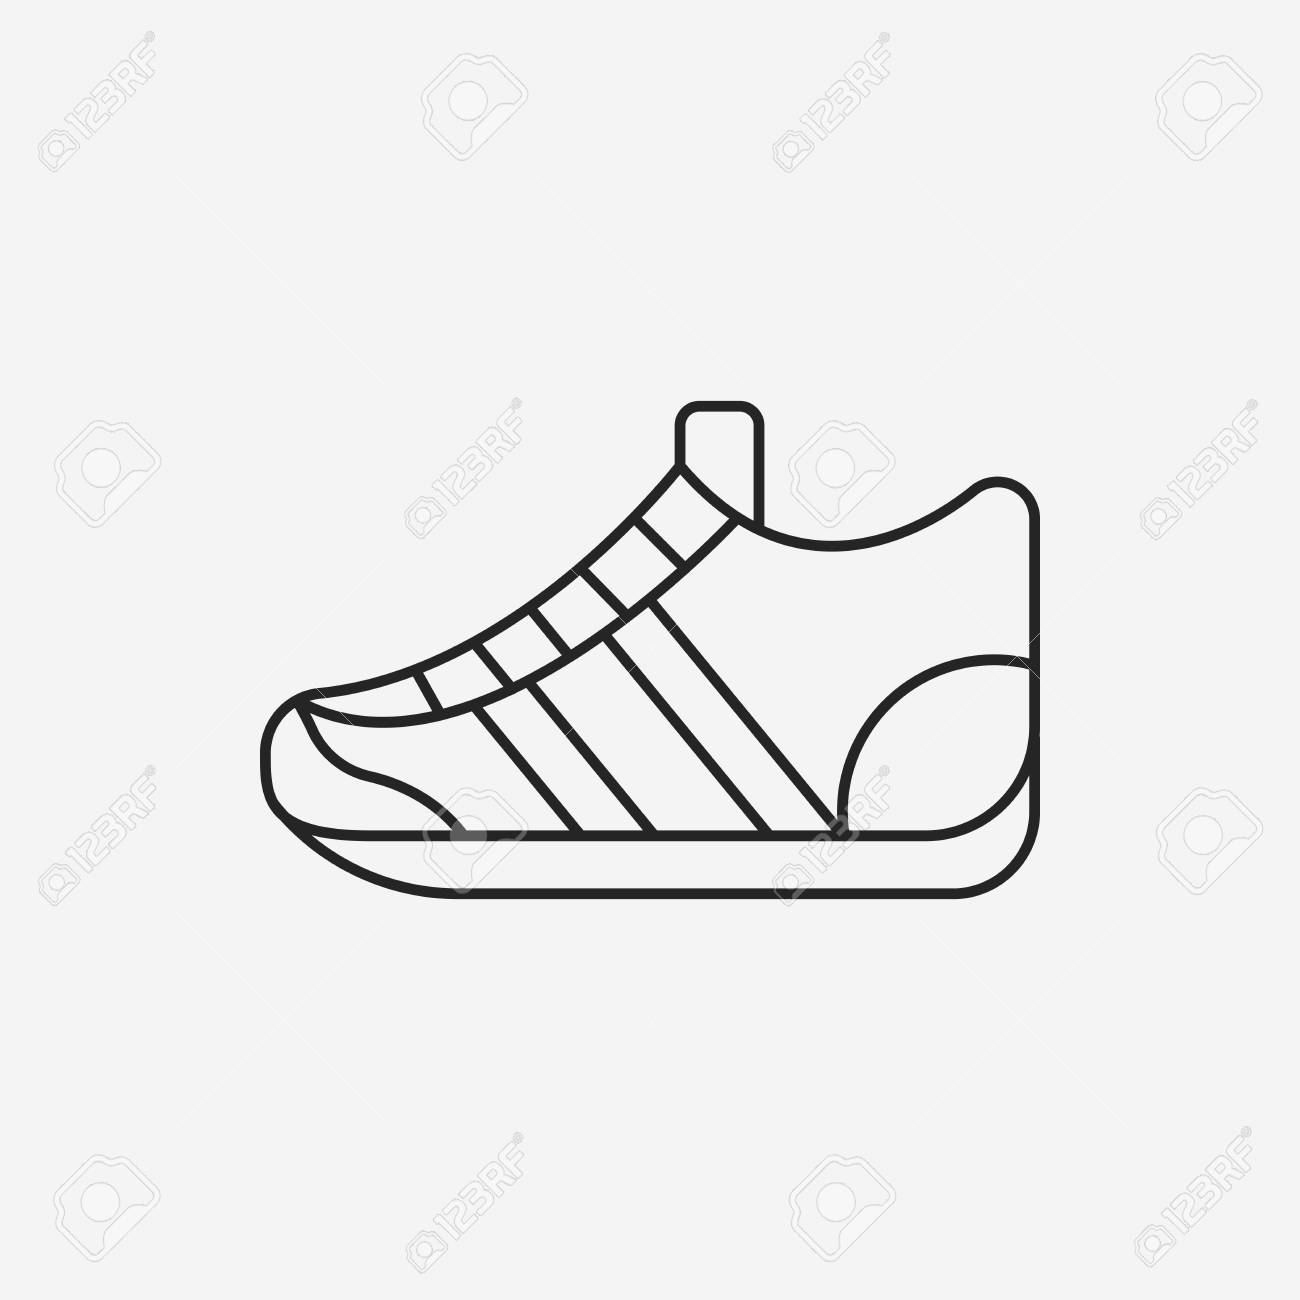 Sneaker Stock ClipartsVectorsAnd Icon Royalty Line Free vm0OnN8w